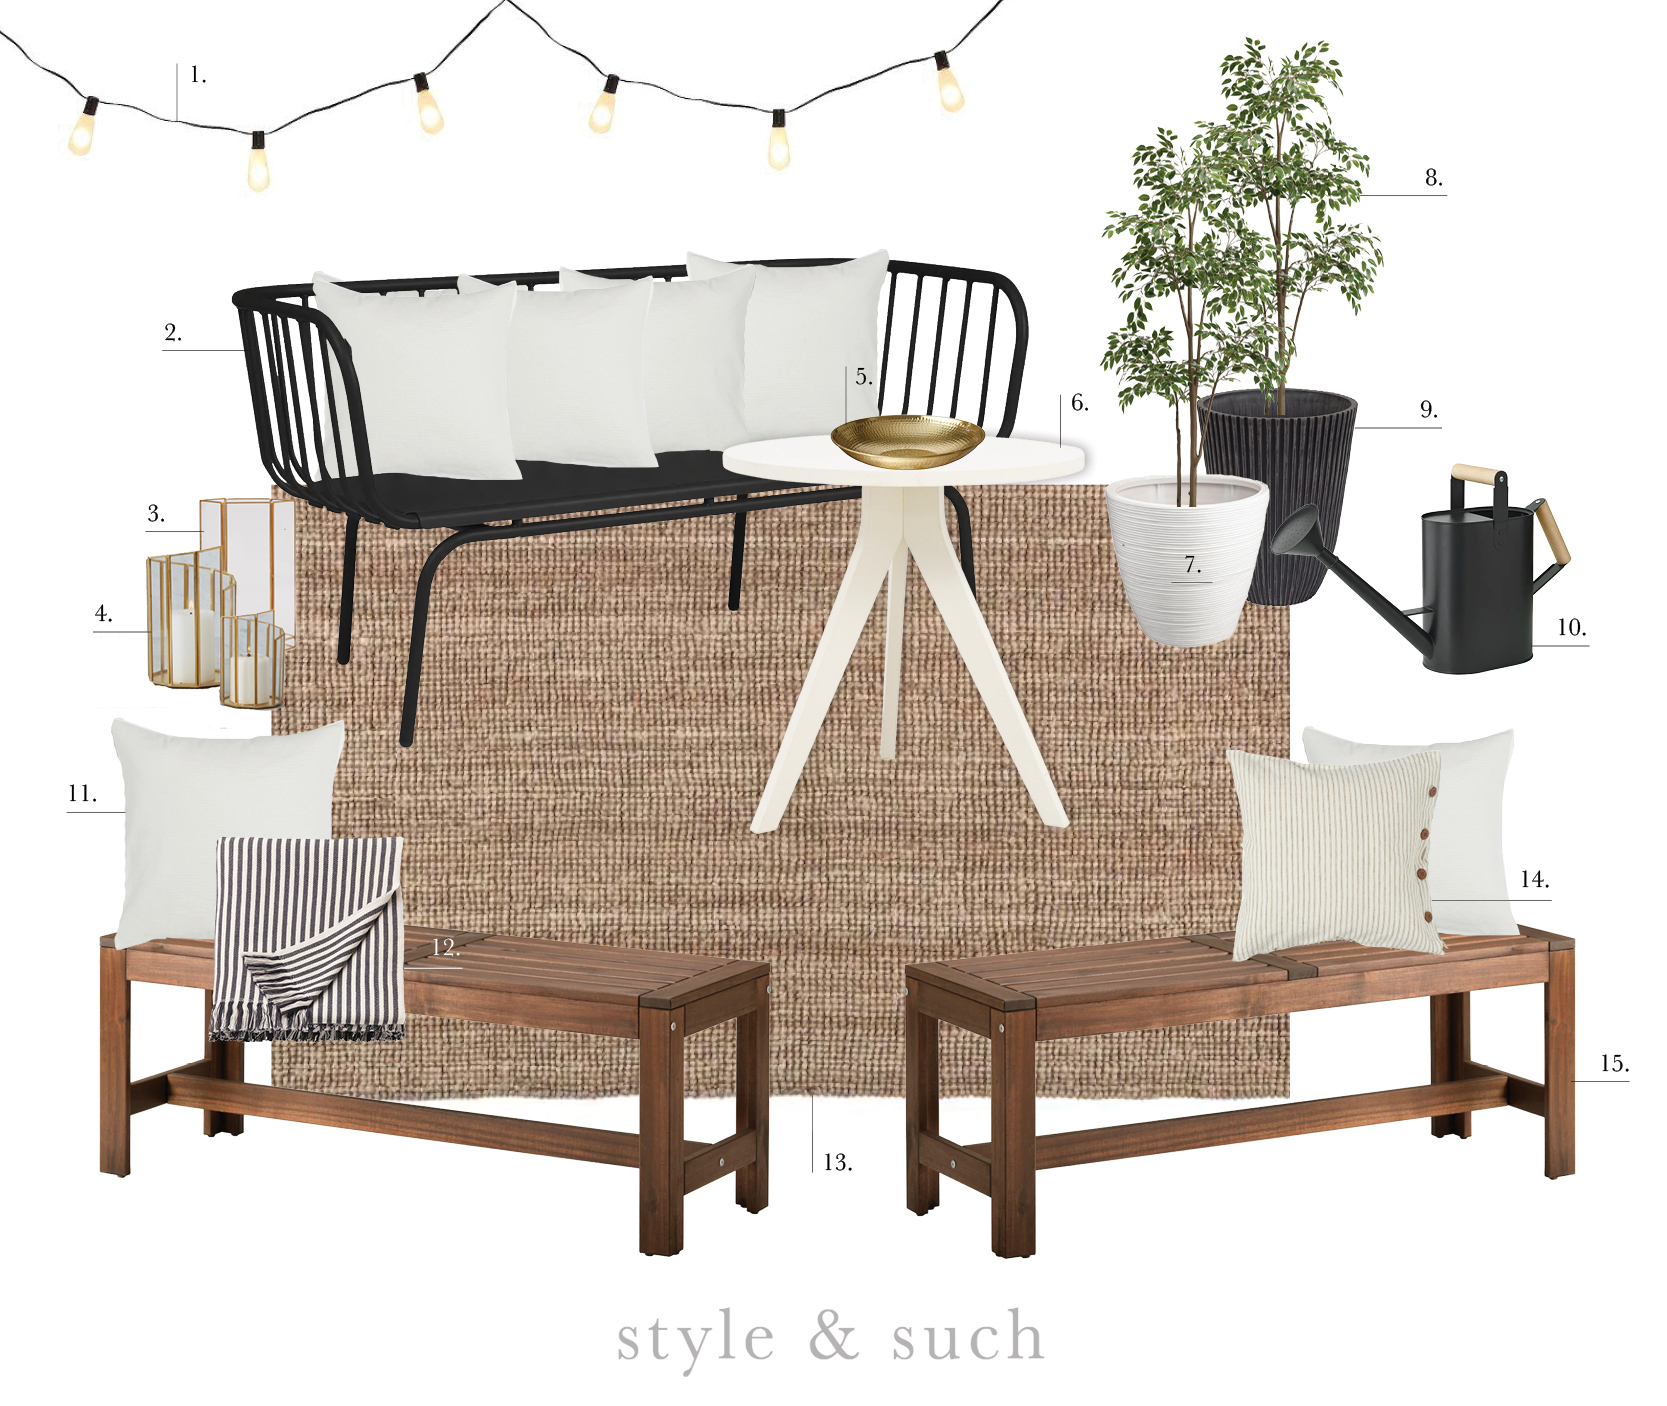 1.  Market String Lights  | 2.  Metal Bench (originally red but I am going to spray paint it!)  | 3.  Faro Candleholder  | 4.  Tamara Set of 2 Candleholders  | 5.  Gold Bowl  | 6.  Tripod Table  | 7.  White Rattan Plant Pot  | 8.  Artificial Tree  | 9.  Textured Garden Pot  | 10.  Watering Can  | 11.  Natural Cushion Cover (all white pillows shown are this one)  | 12.  Striped Throw  | 13.  Lohals Jute Rug  | 14.  Linen Cushion Cover  | 15.  Wooden Benches